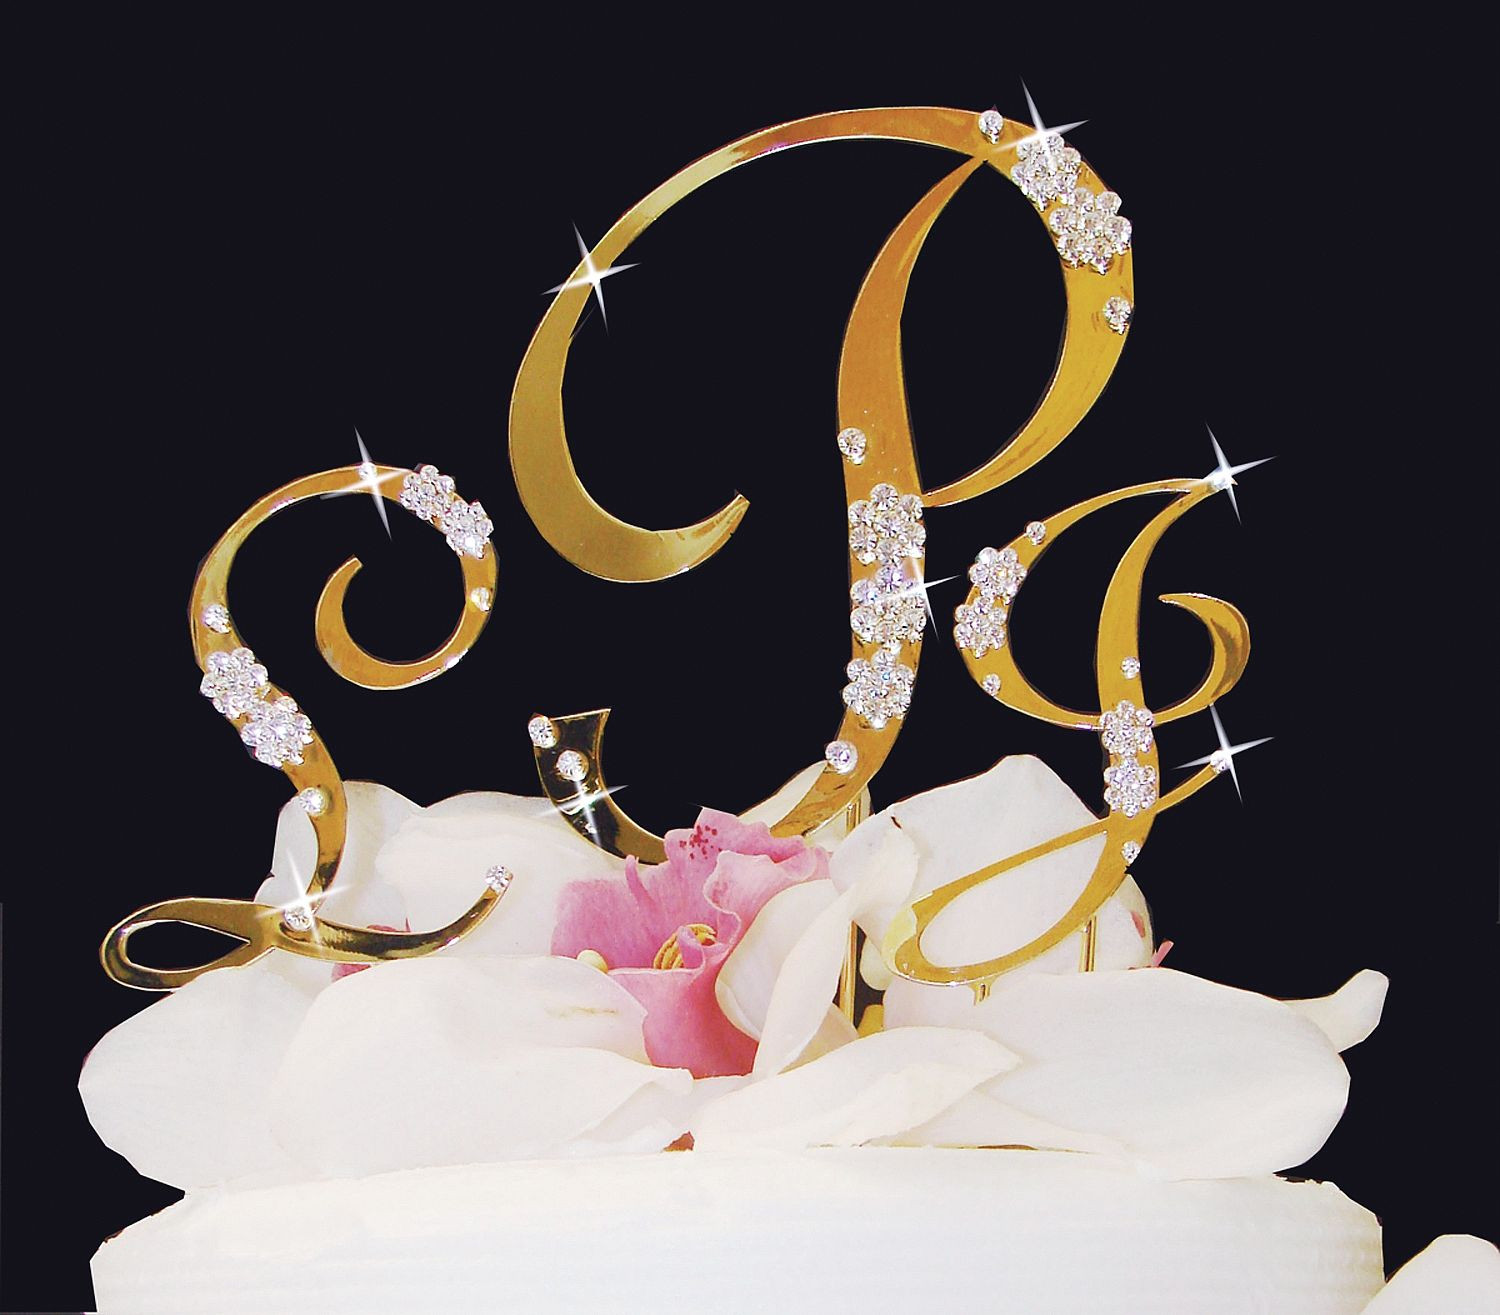 Gold Initial Cake Toppers For Wedding Cakes  Monogram Gold Rhinestone Inital Cake Toppers with